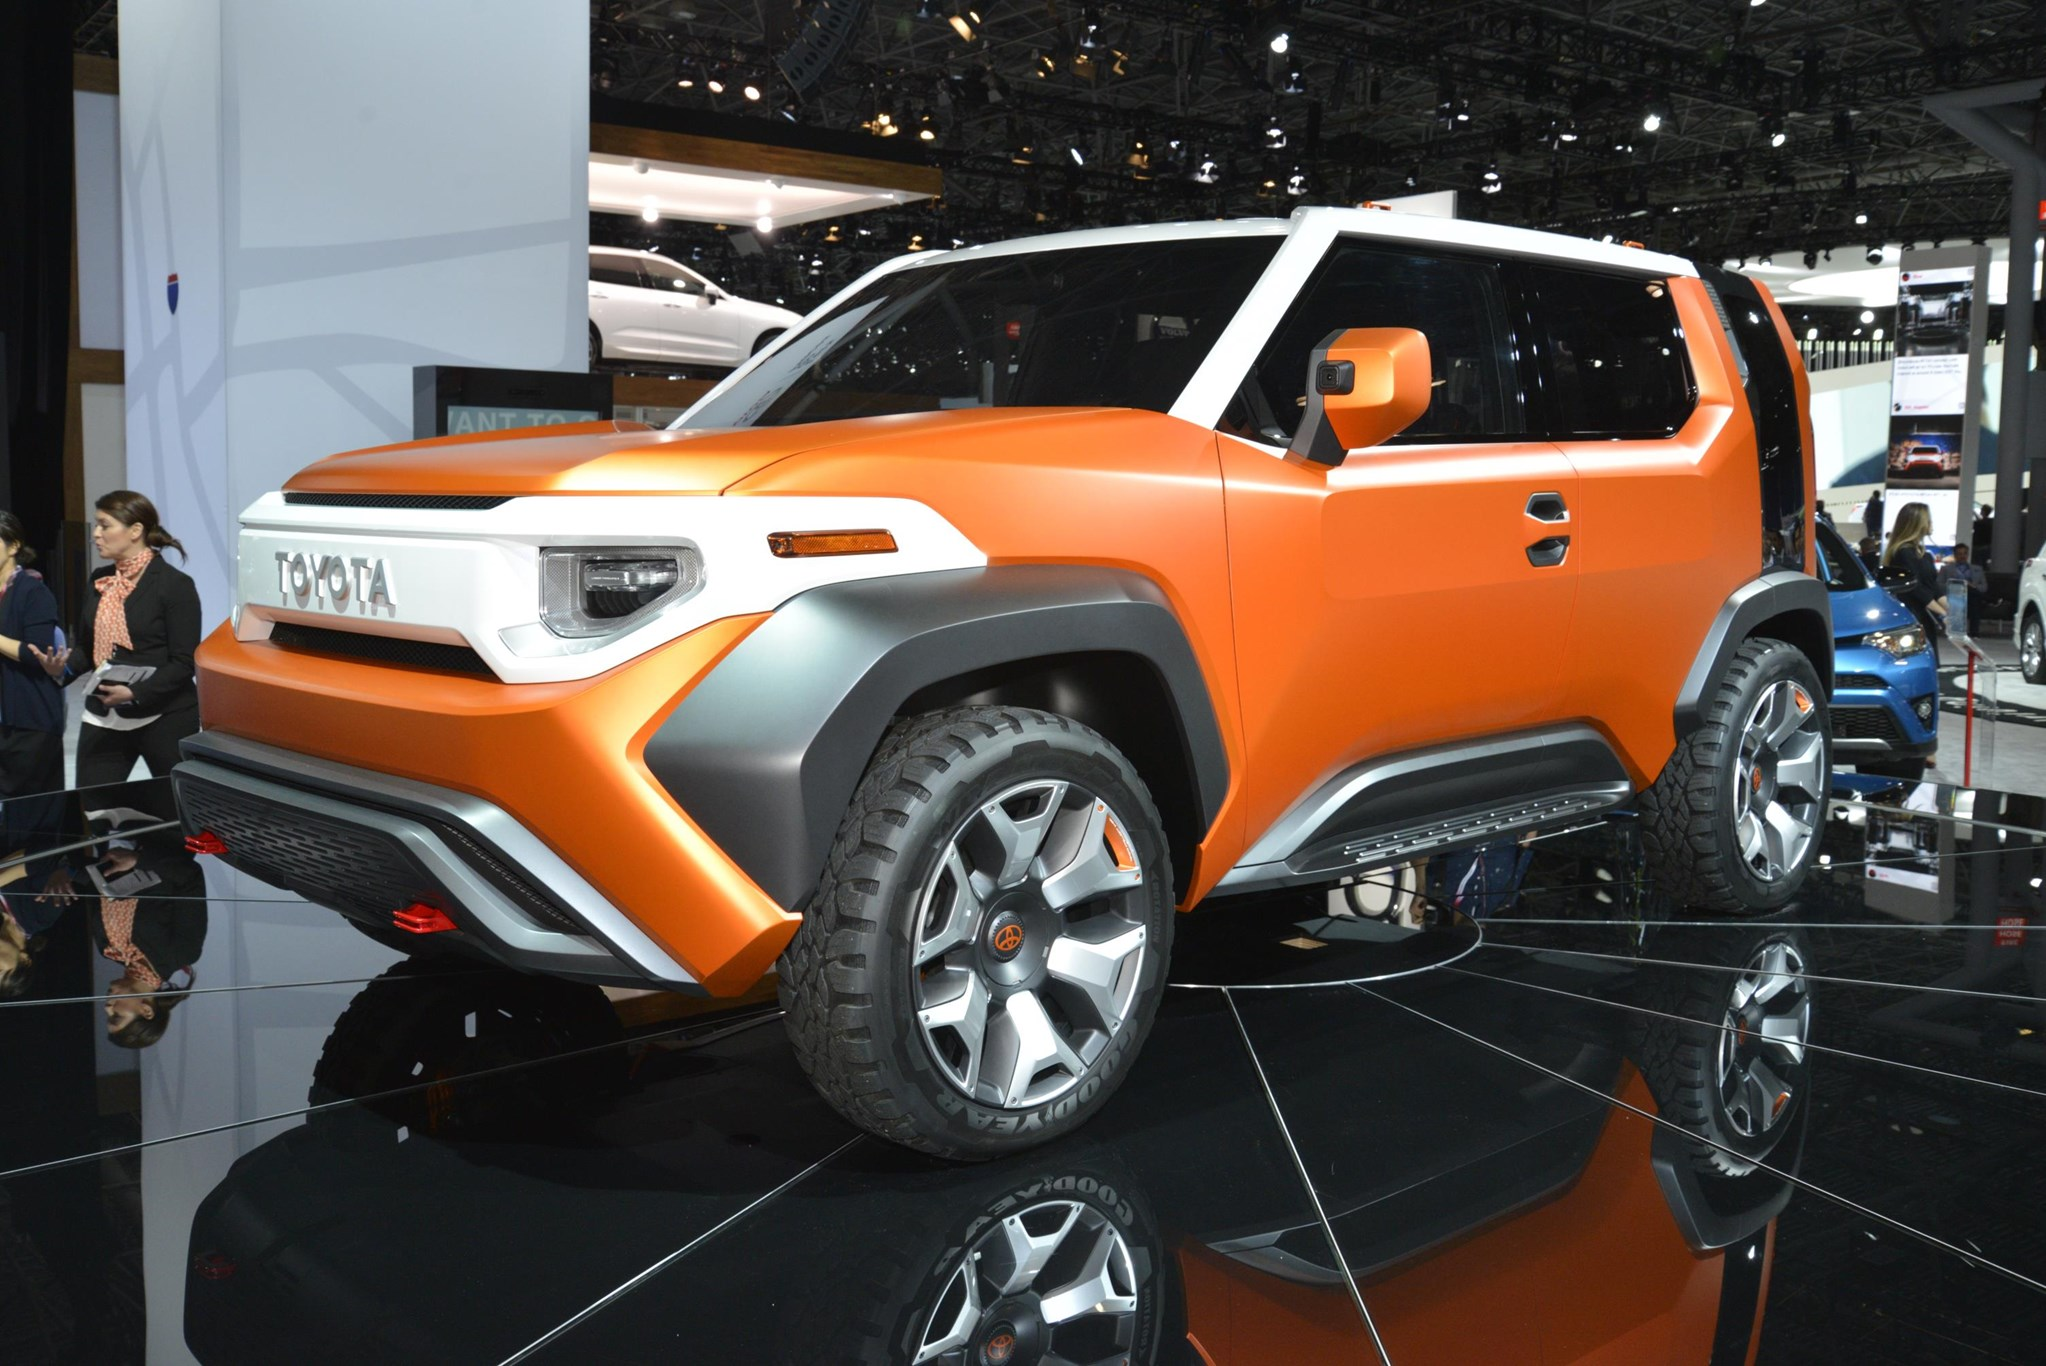 Toyota Ft 4X >> Toyota Ft 4x The Casualcore Soft Roader For Millennials